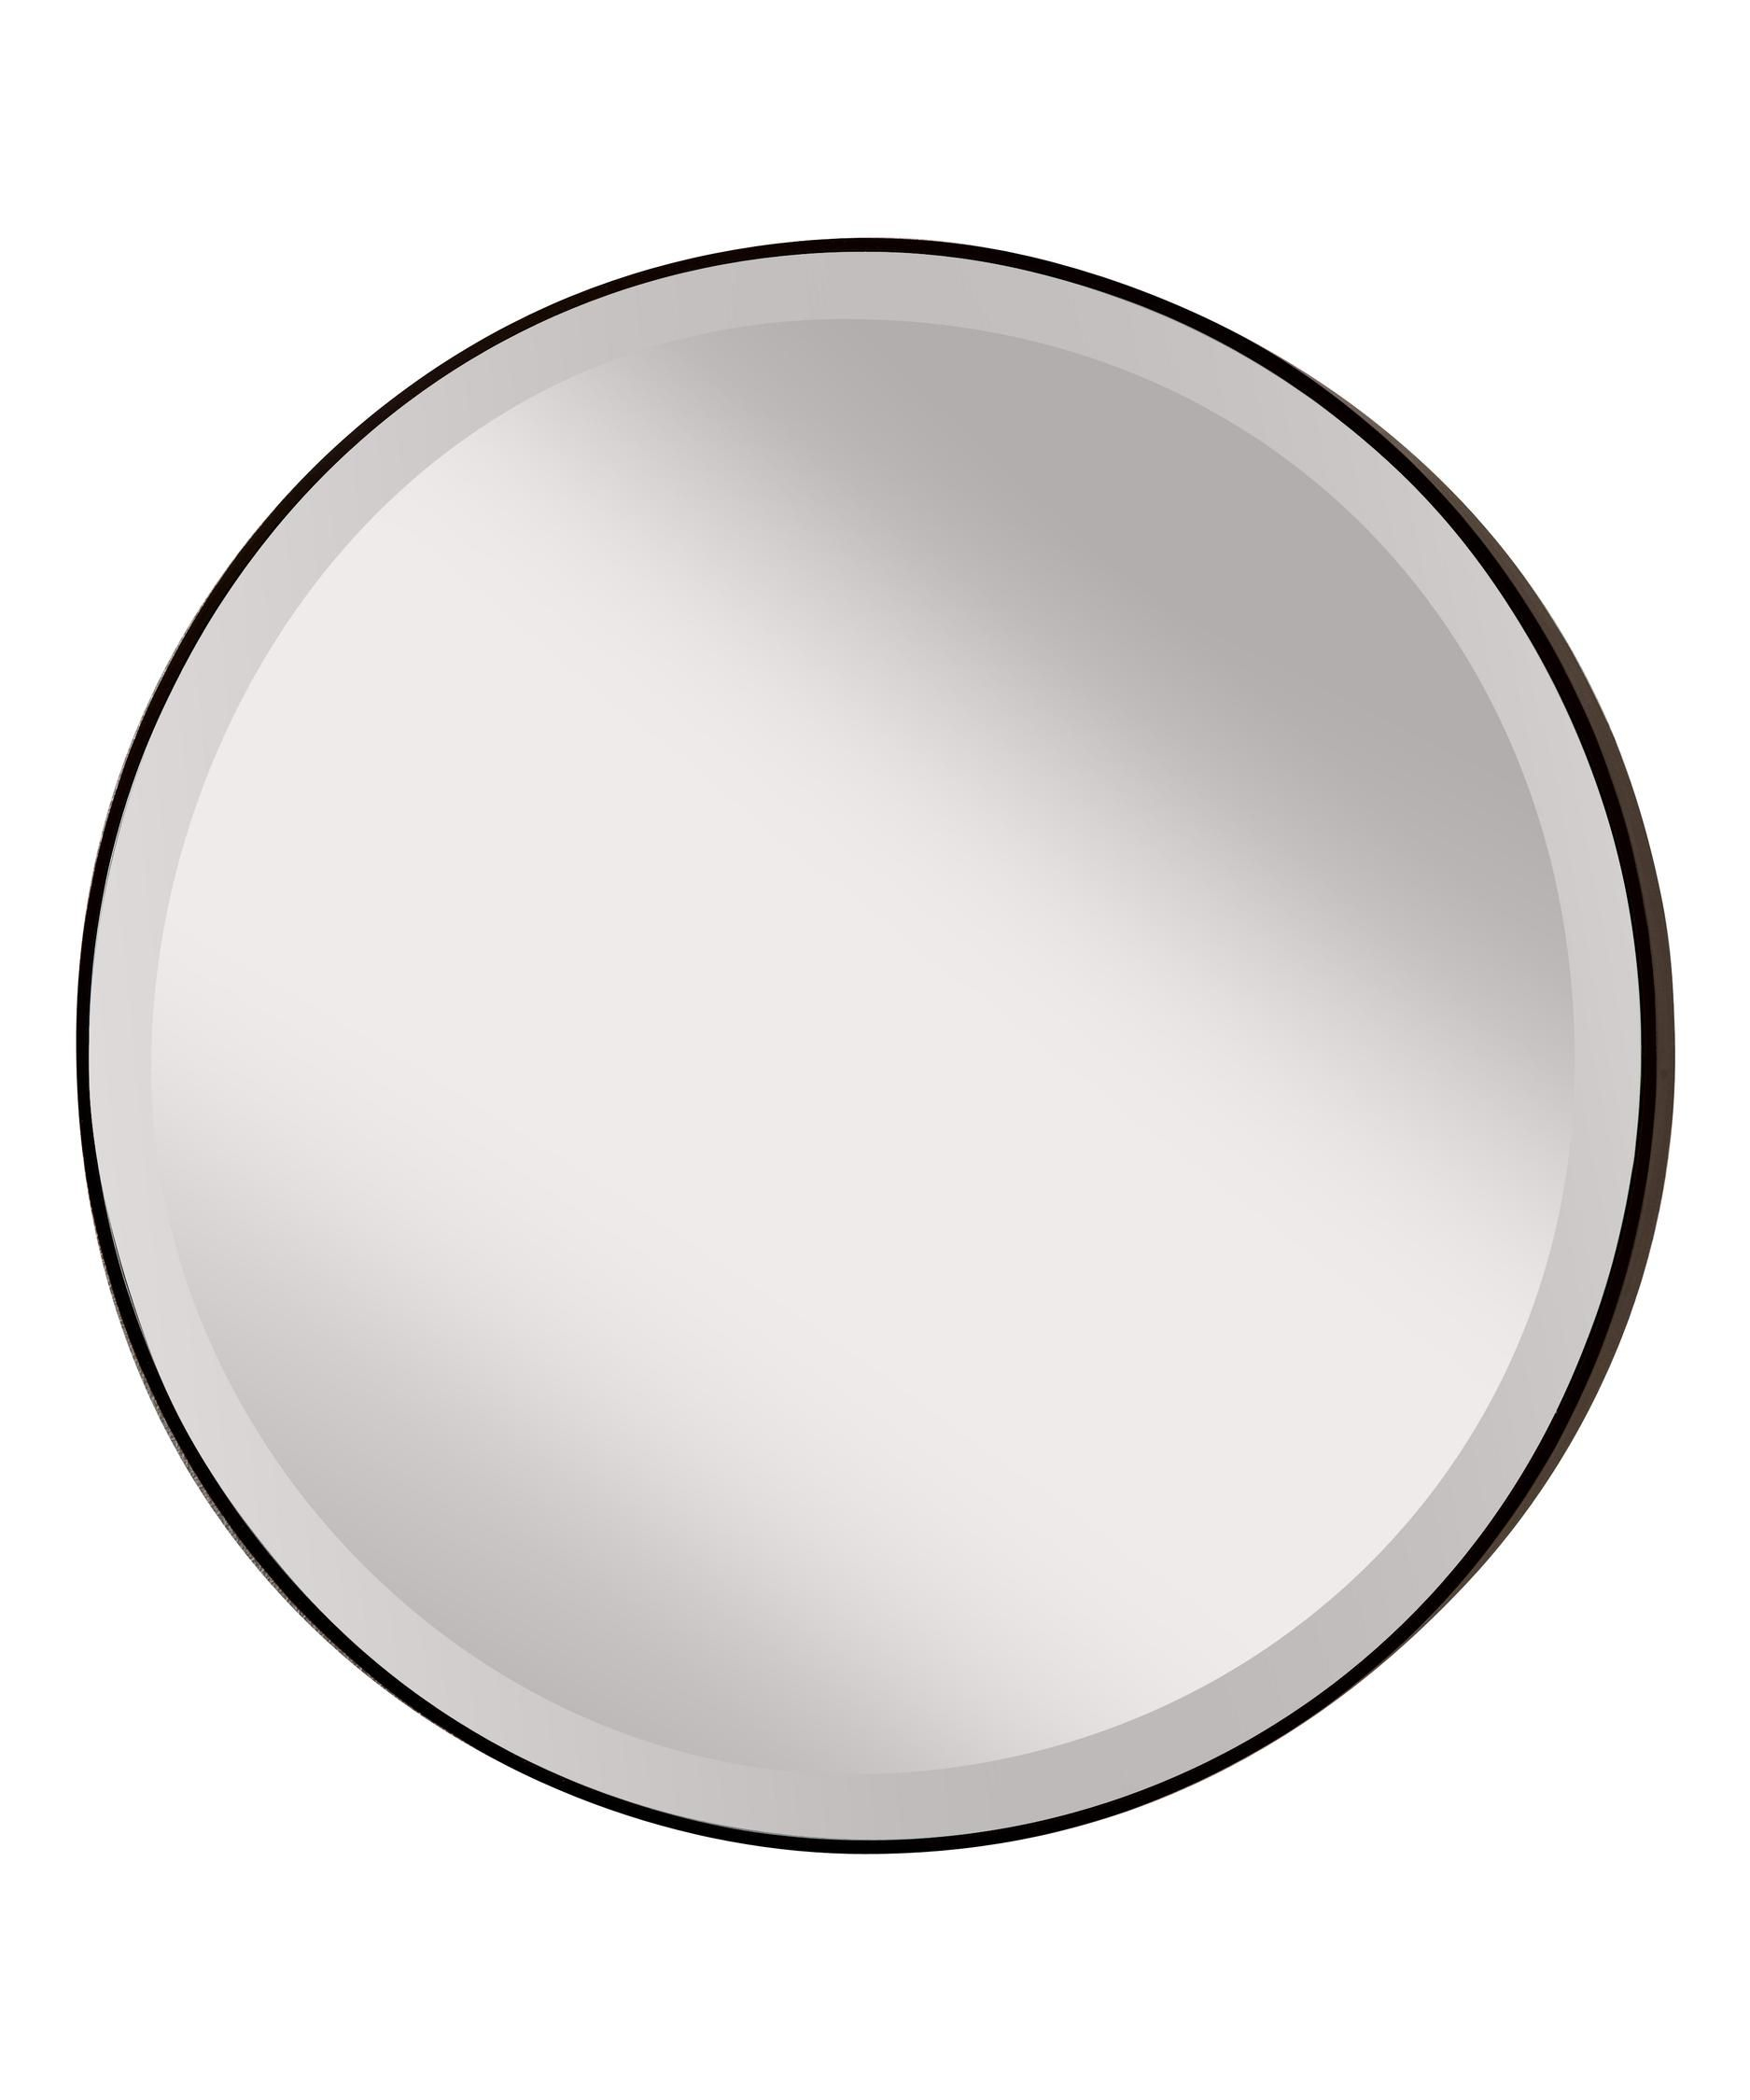 Levan Modern & Contemporary Beveled Accent Mirror | Newtown Intended For Newtown Accent Mirrors (Image 8 of 20)